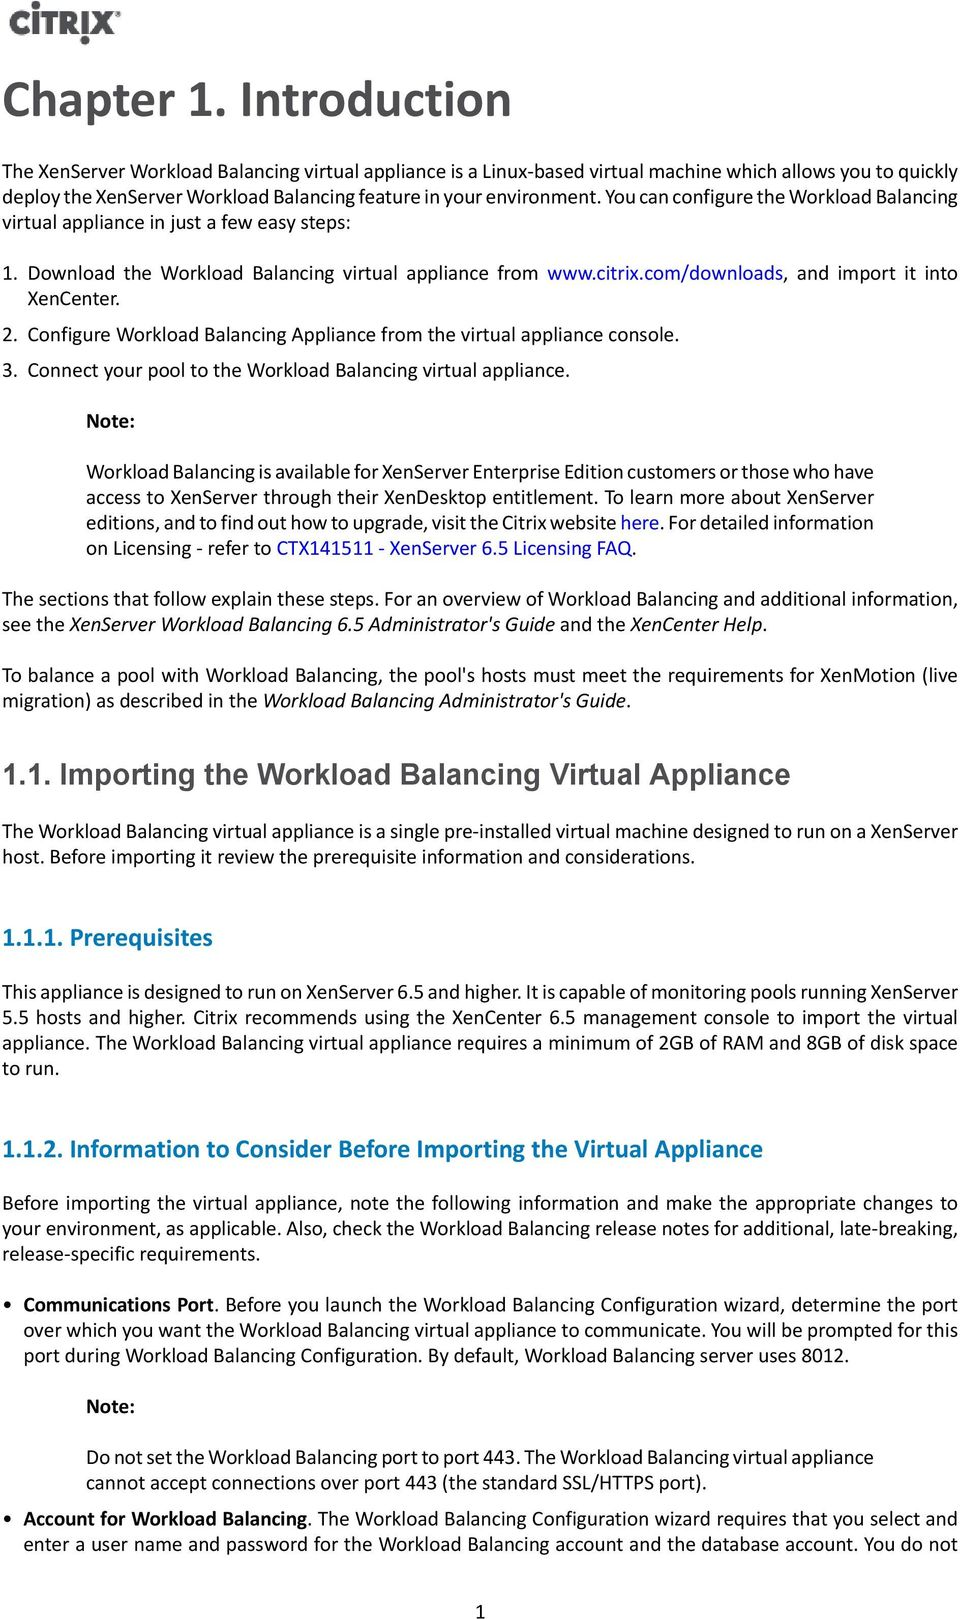 You can configure the Workload Balancing virtual appliance in just a few easy steps: 1. Download the Workload Balancing virtual appliance from www.citrix.com/downloads, and import it into XenCenter.